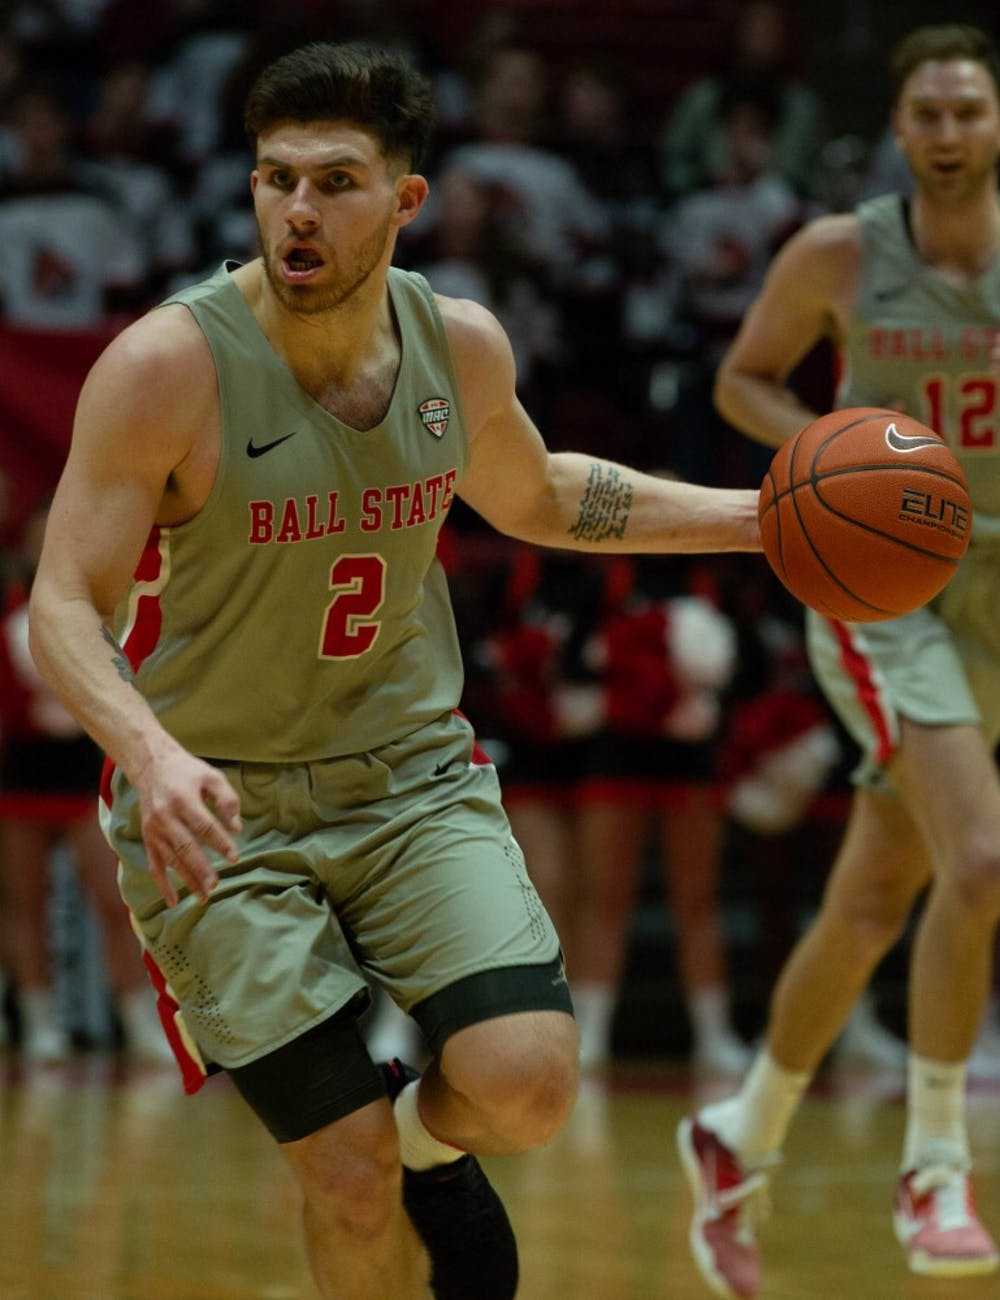 Redshirt senior guard Tayler Persons moves with the ball during the game against the University of Akron Feb. 16, 2019 in John E. Worthen Arena. Ball State defeated Akron 57-56. Scott Fleener, DN